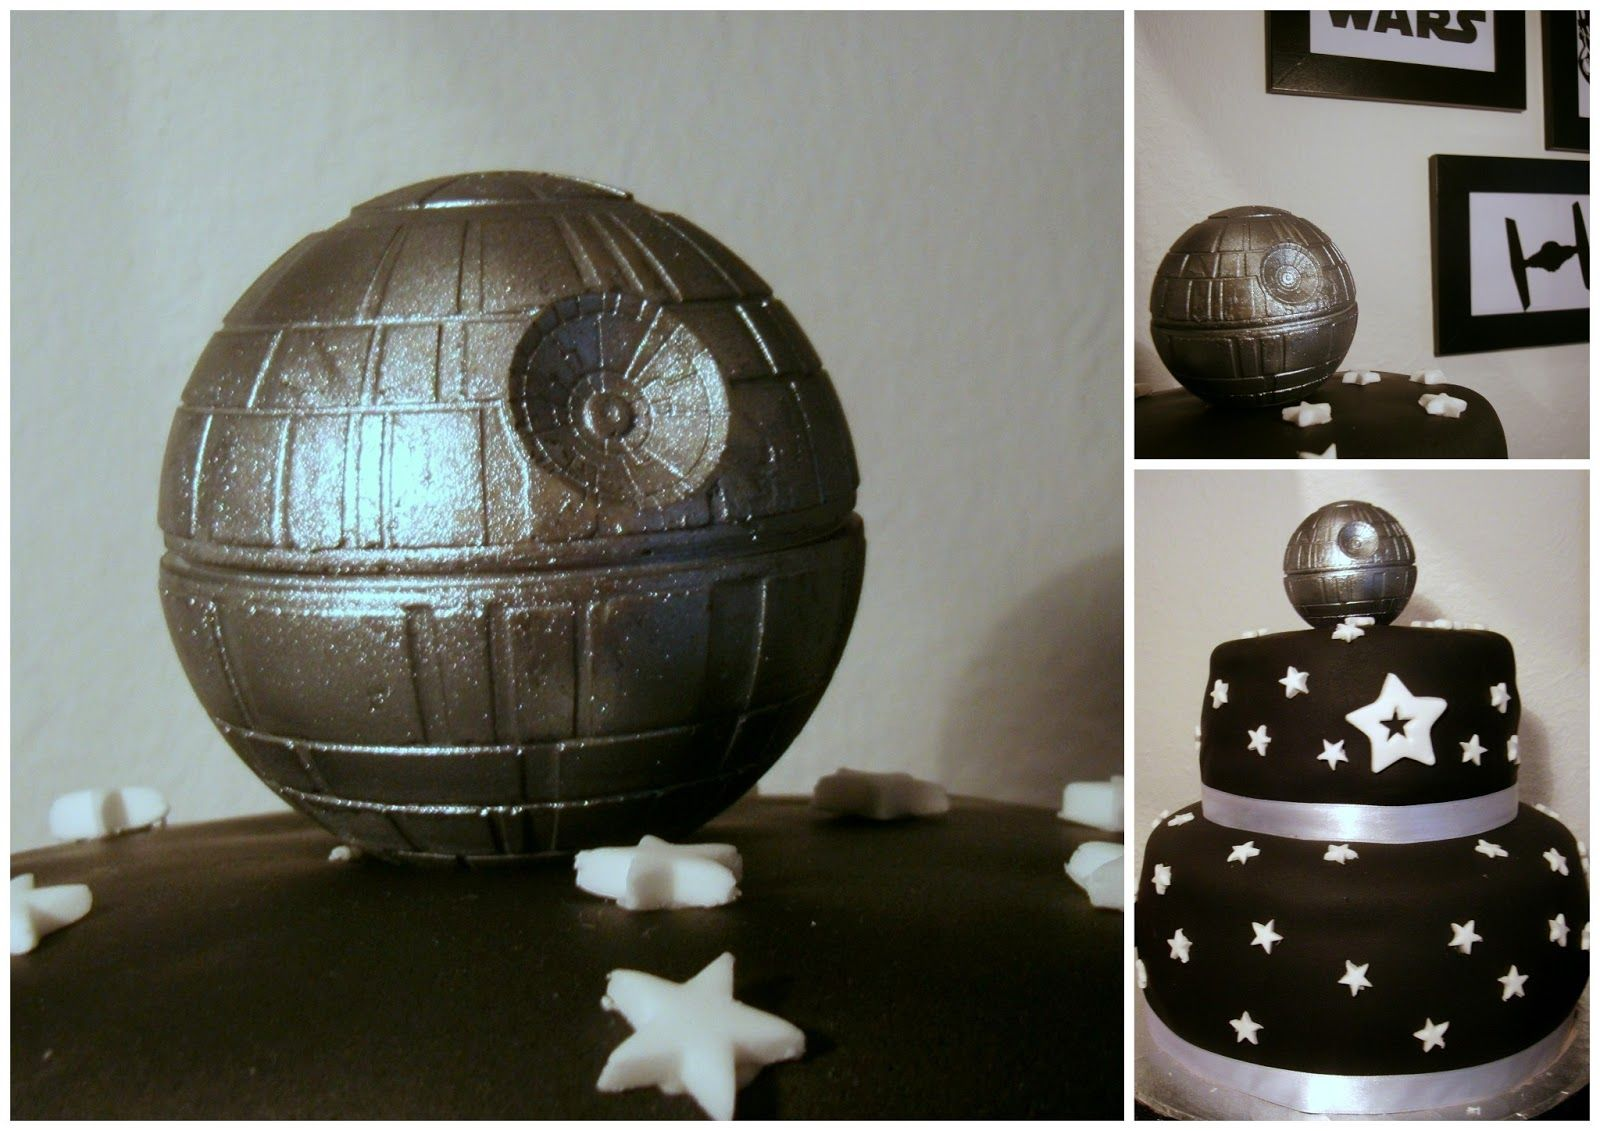 Cup Cake Star Wars Thermomix